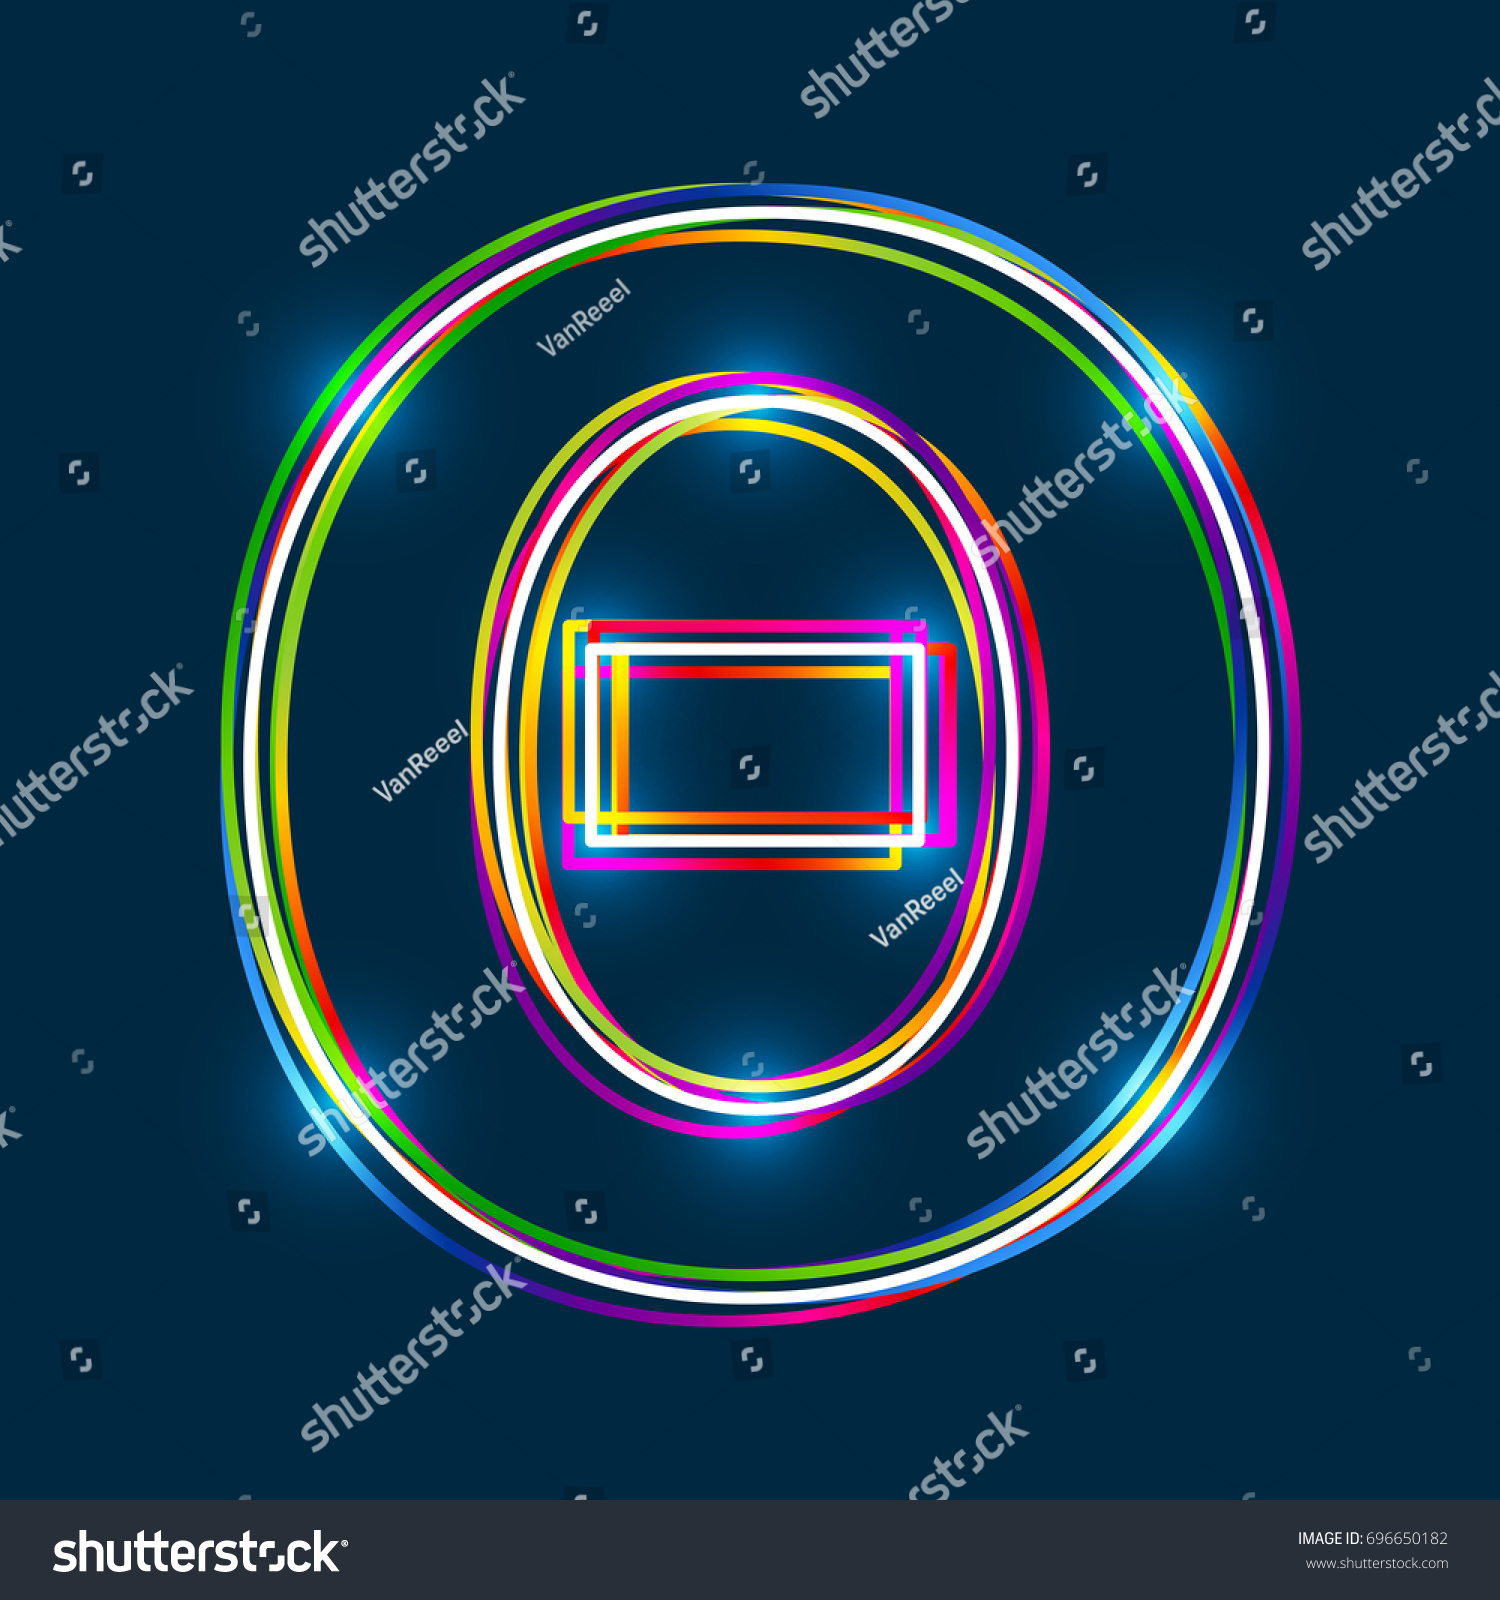 Greek capital letter theta multicolor outline stock vector greek capital letter theta multicolor outline font with glowing effect on blue background vector biocorpaavc Image collections